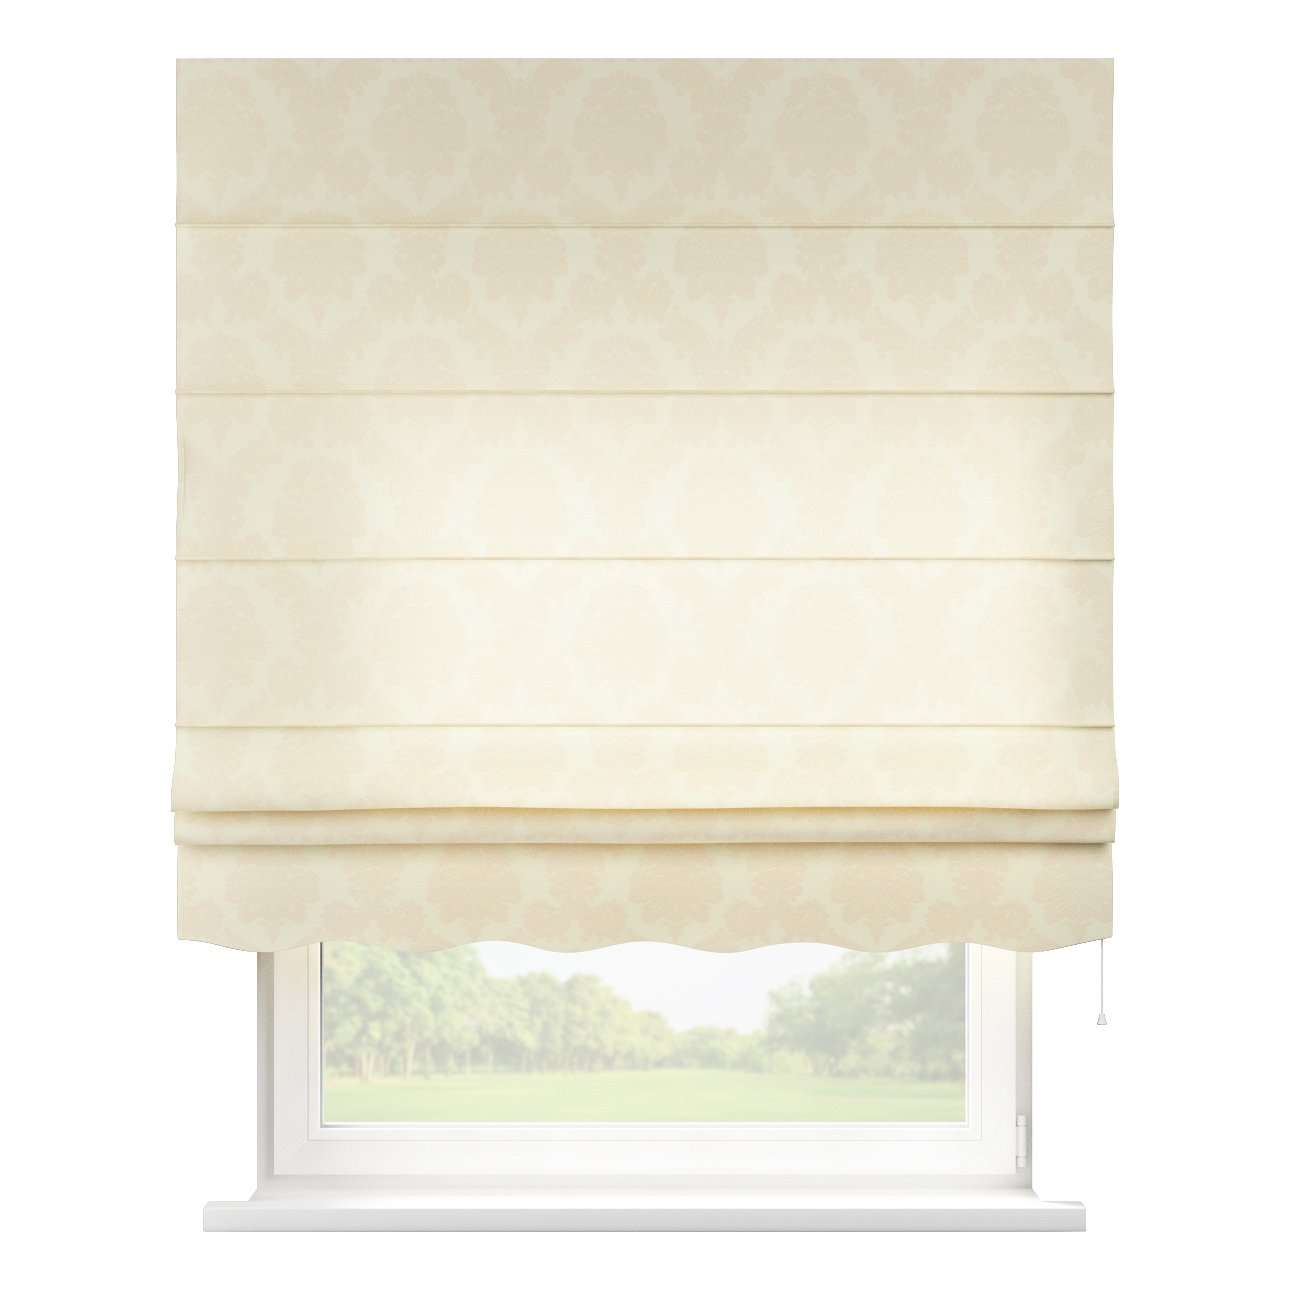 Florence roman blind  80 x 170 cm (31.5 x 67 inch) in collection Damasco, fabric: 613-01